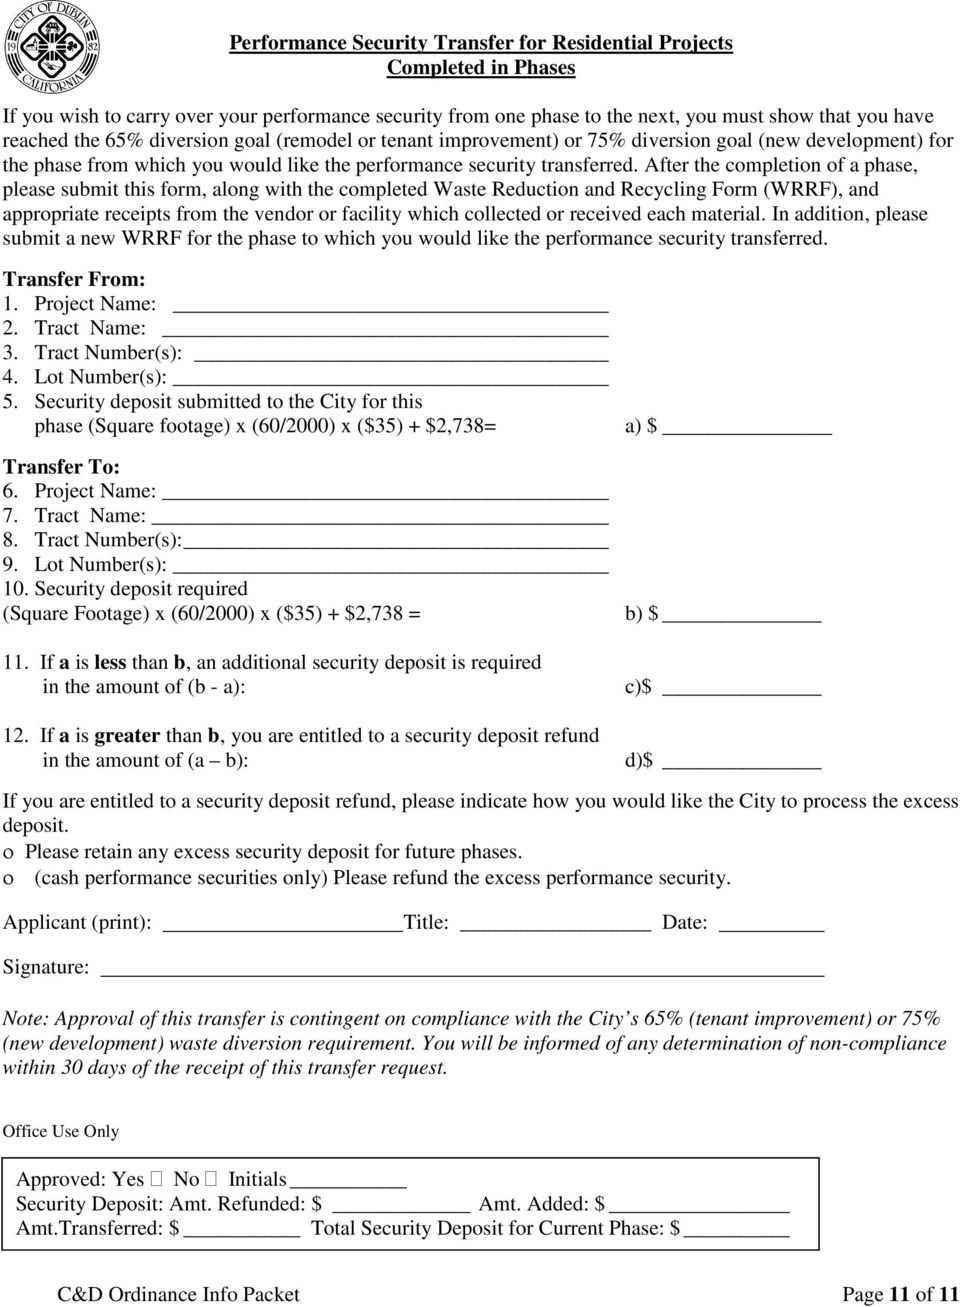 After the completion of a phase, please submit this form, along with the completed Waste Reduction and Recycling Form (WRRF), and appropriate receipts from the vendor or facility which collected or